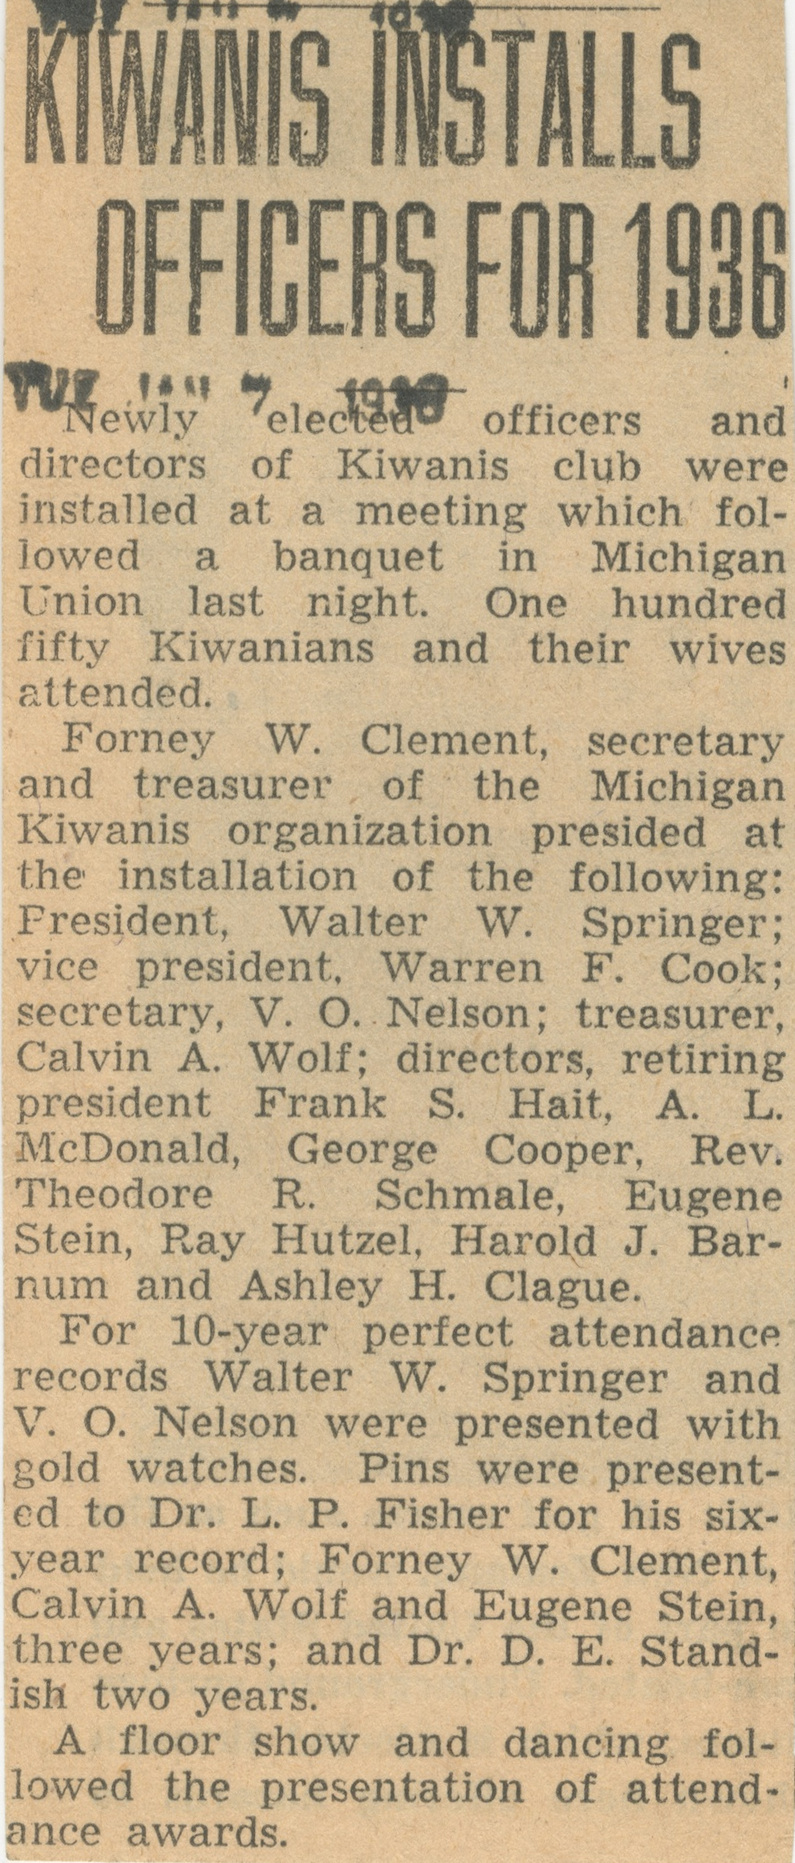 Kiwanis Installs Officers For 1936 image